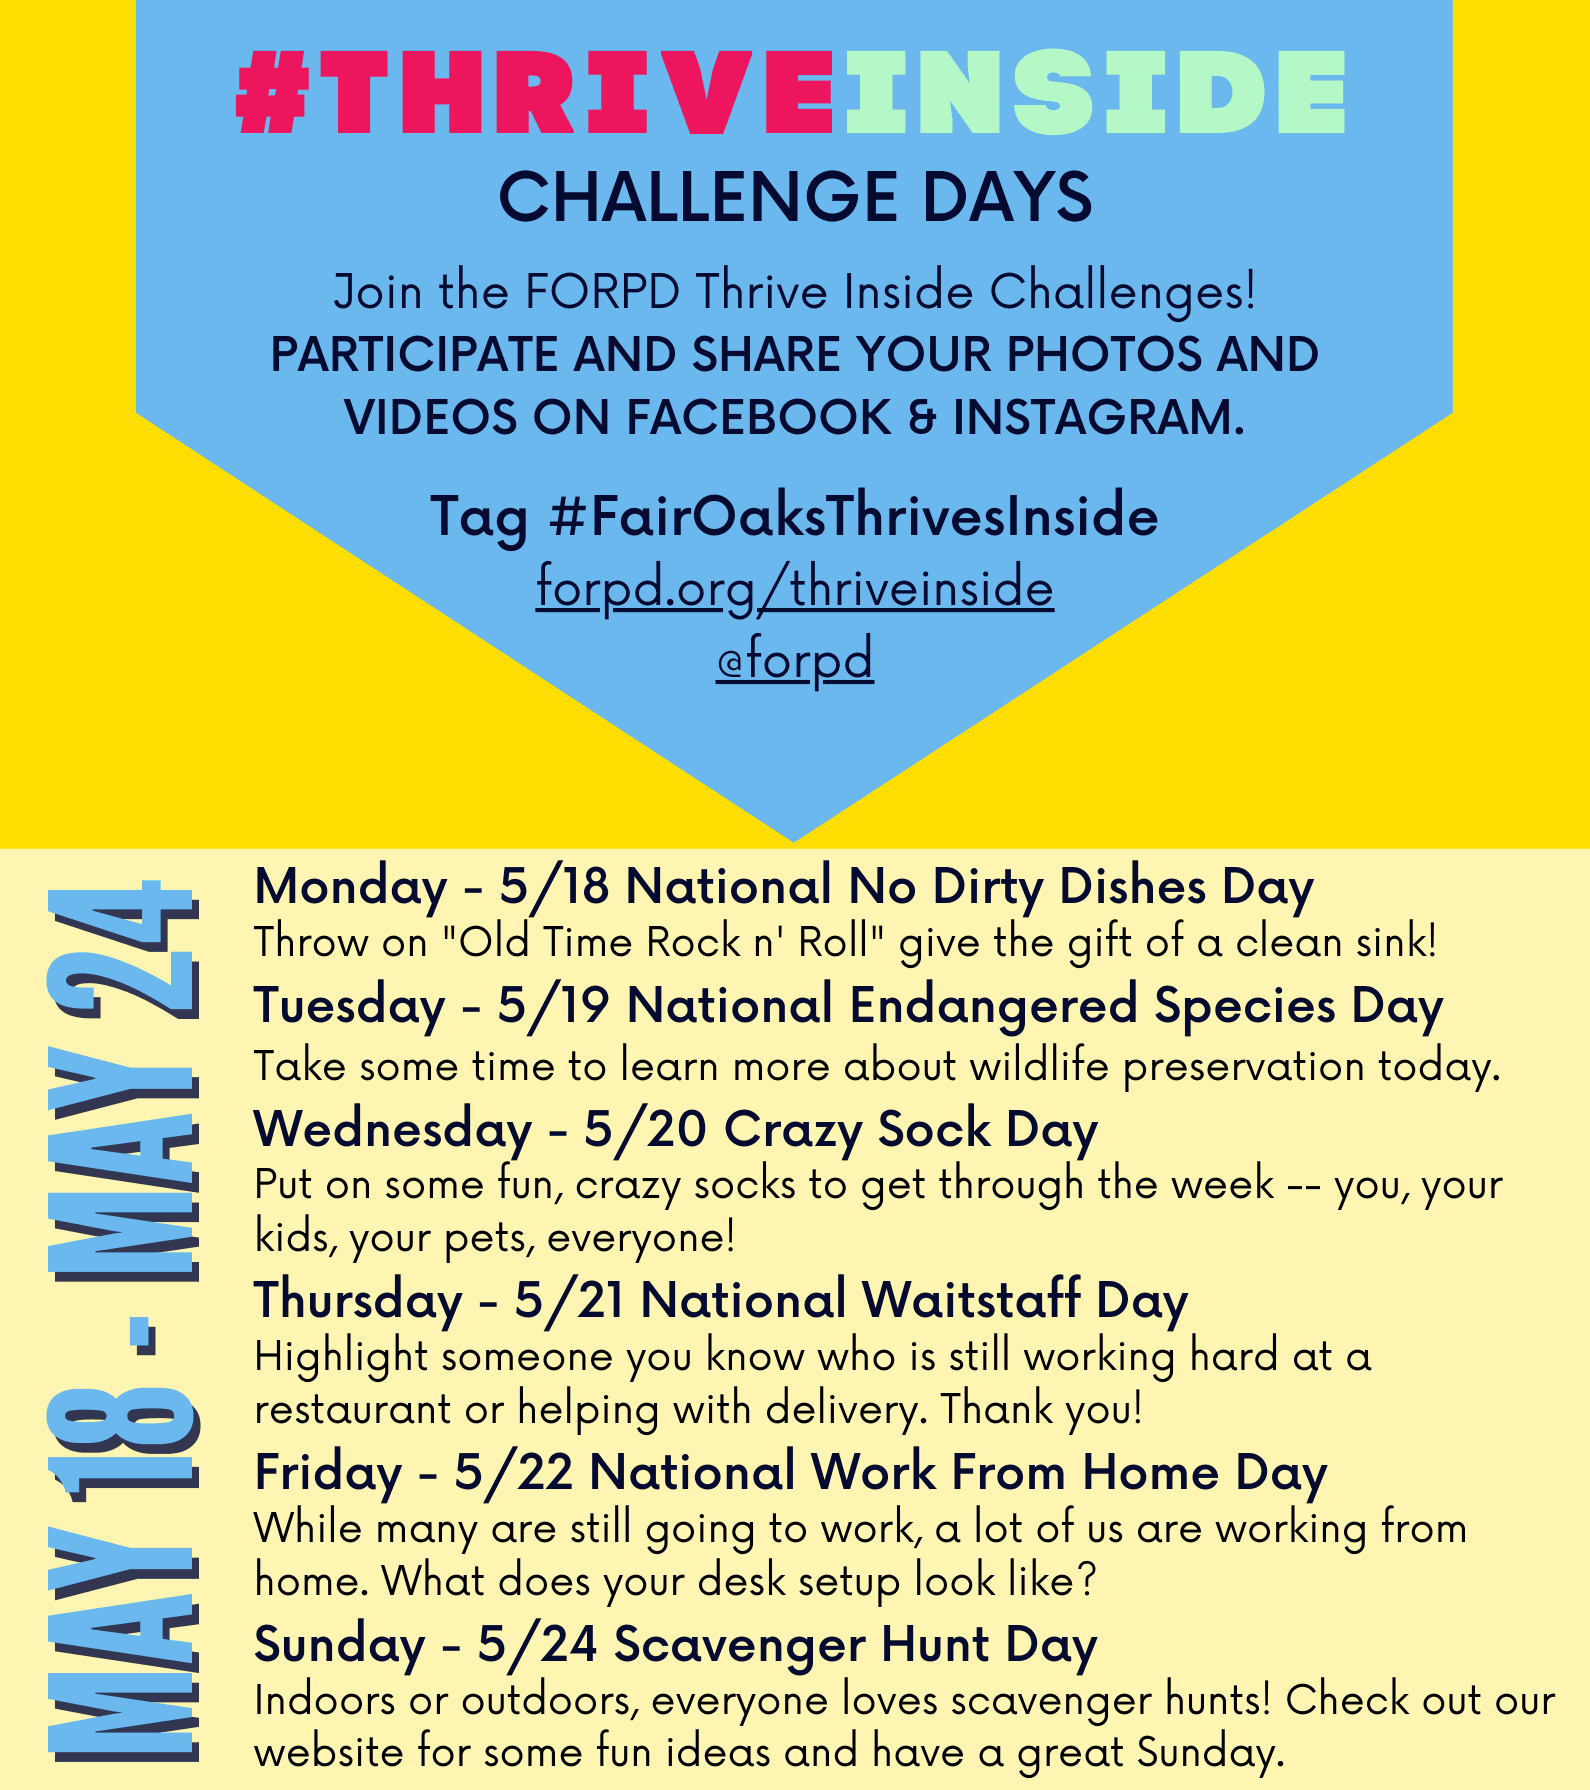 FairOaksThrivesInside Challenges May 18-24